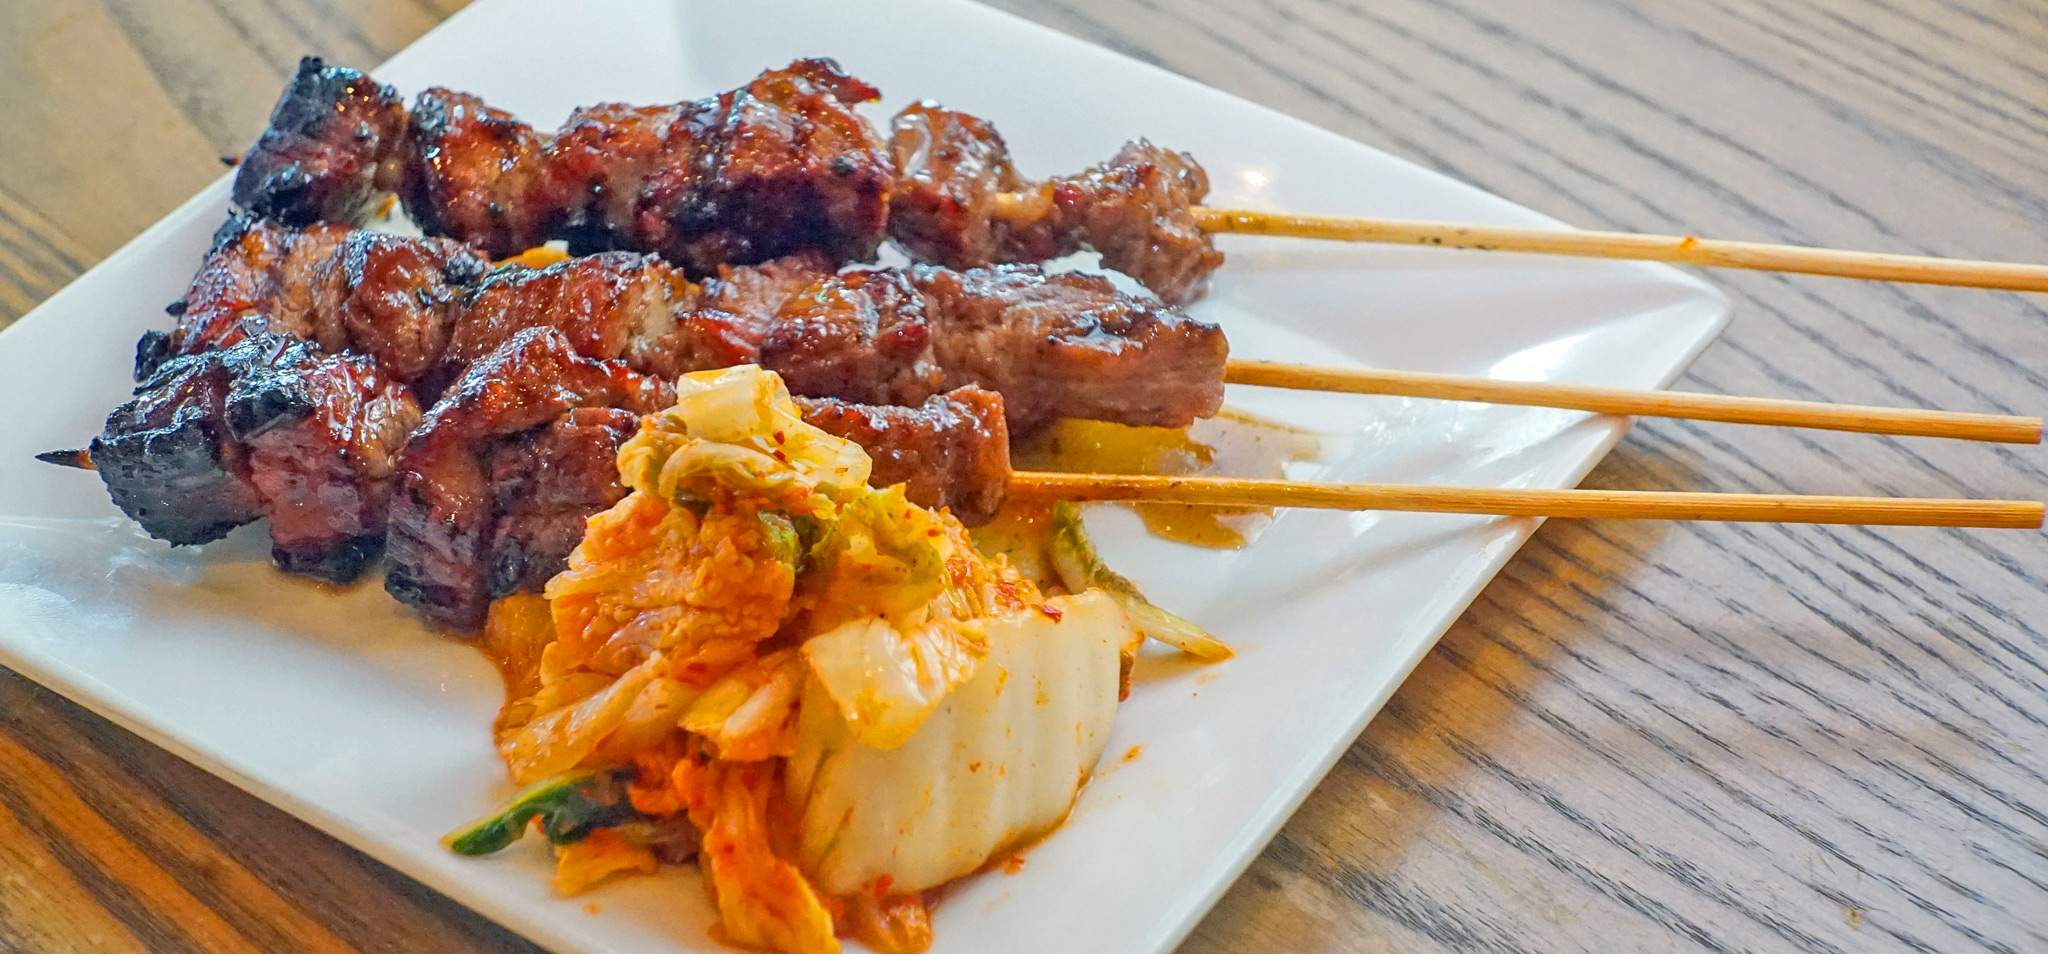 Beef Bulgogi Street Skewers - cooked over a 1000° wood burning grill